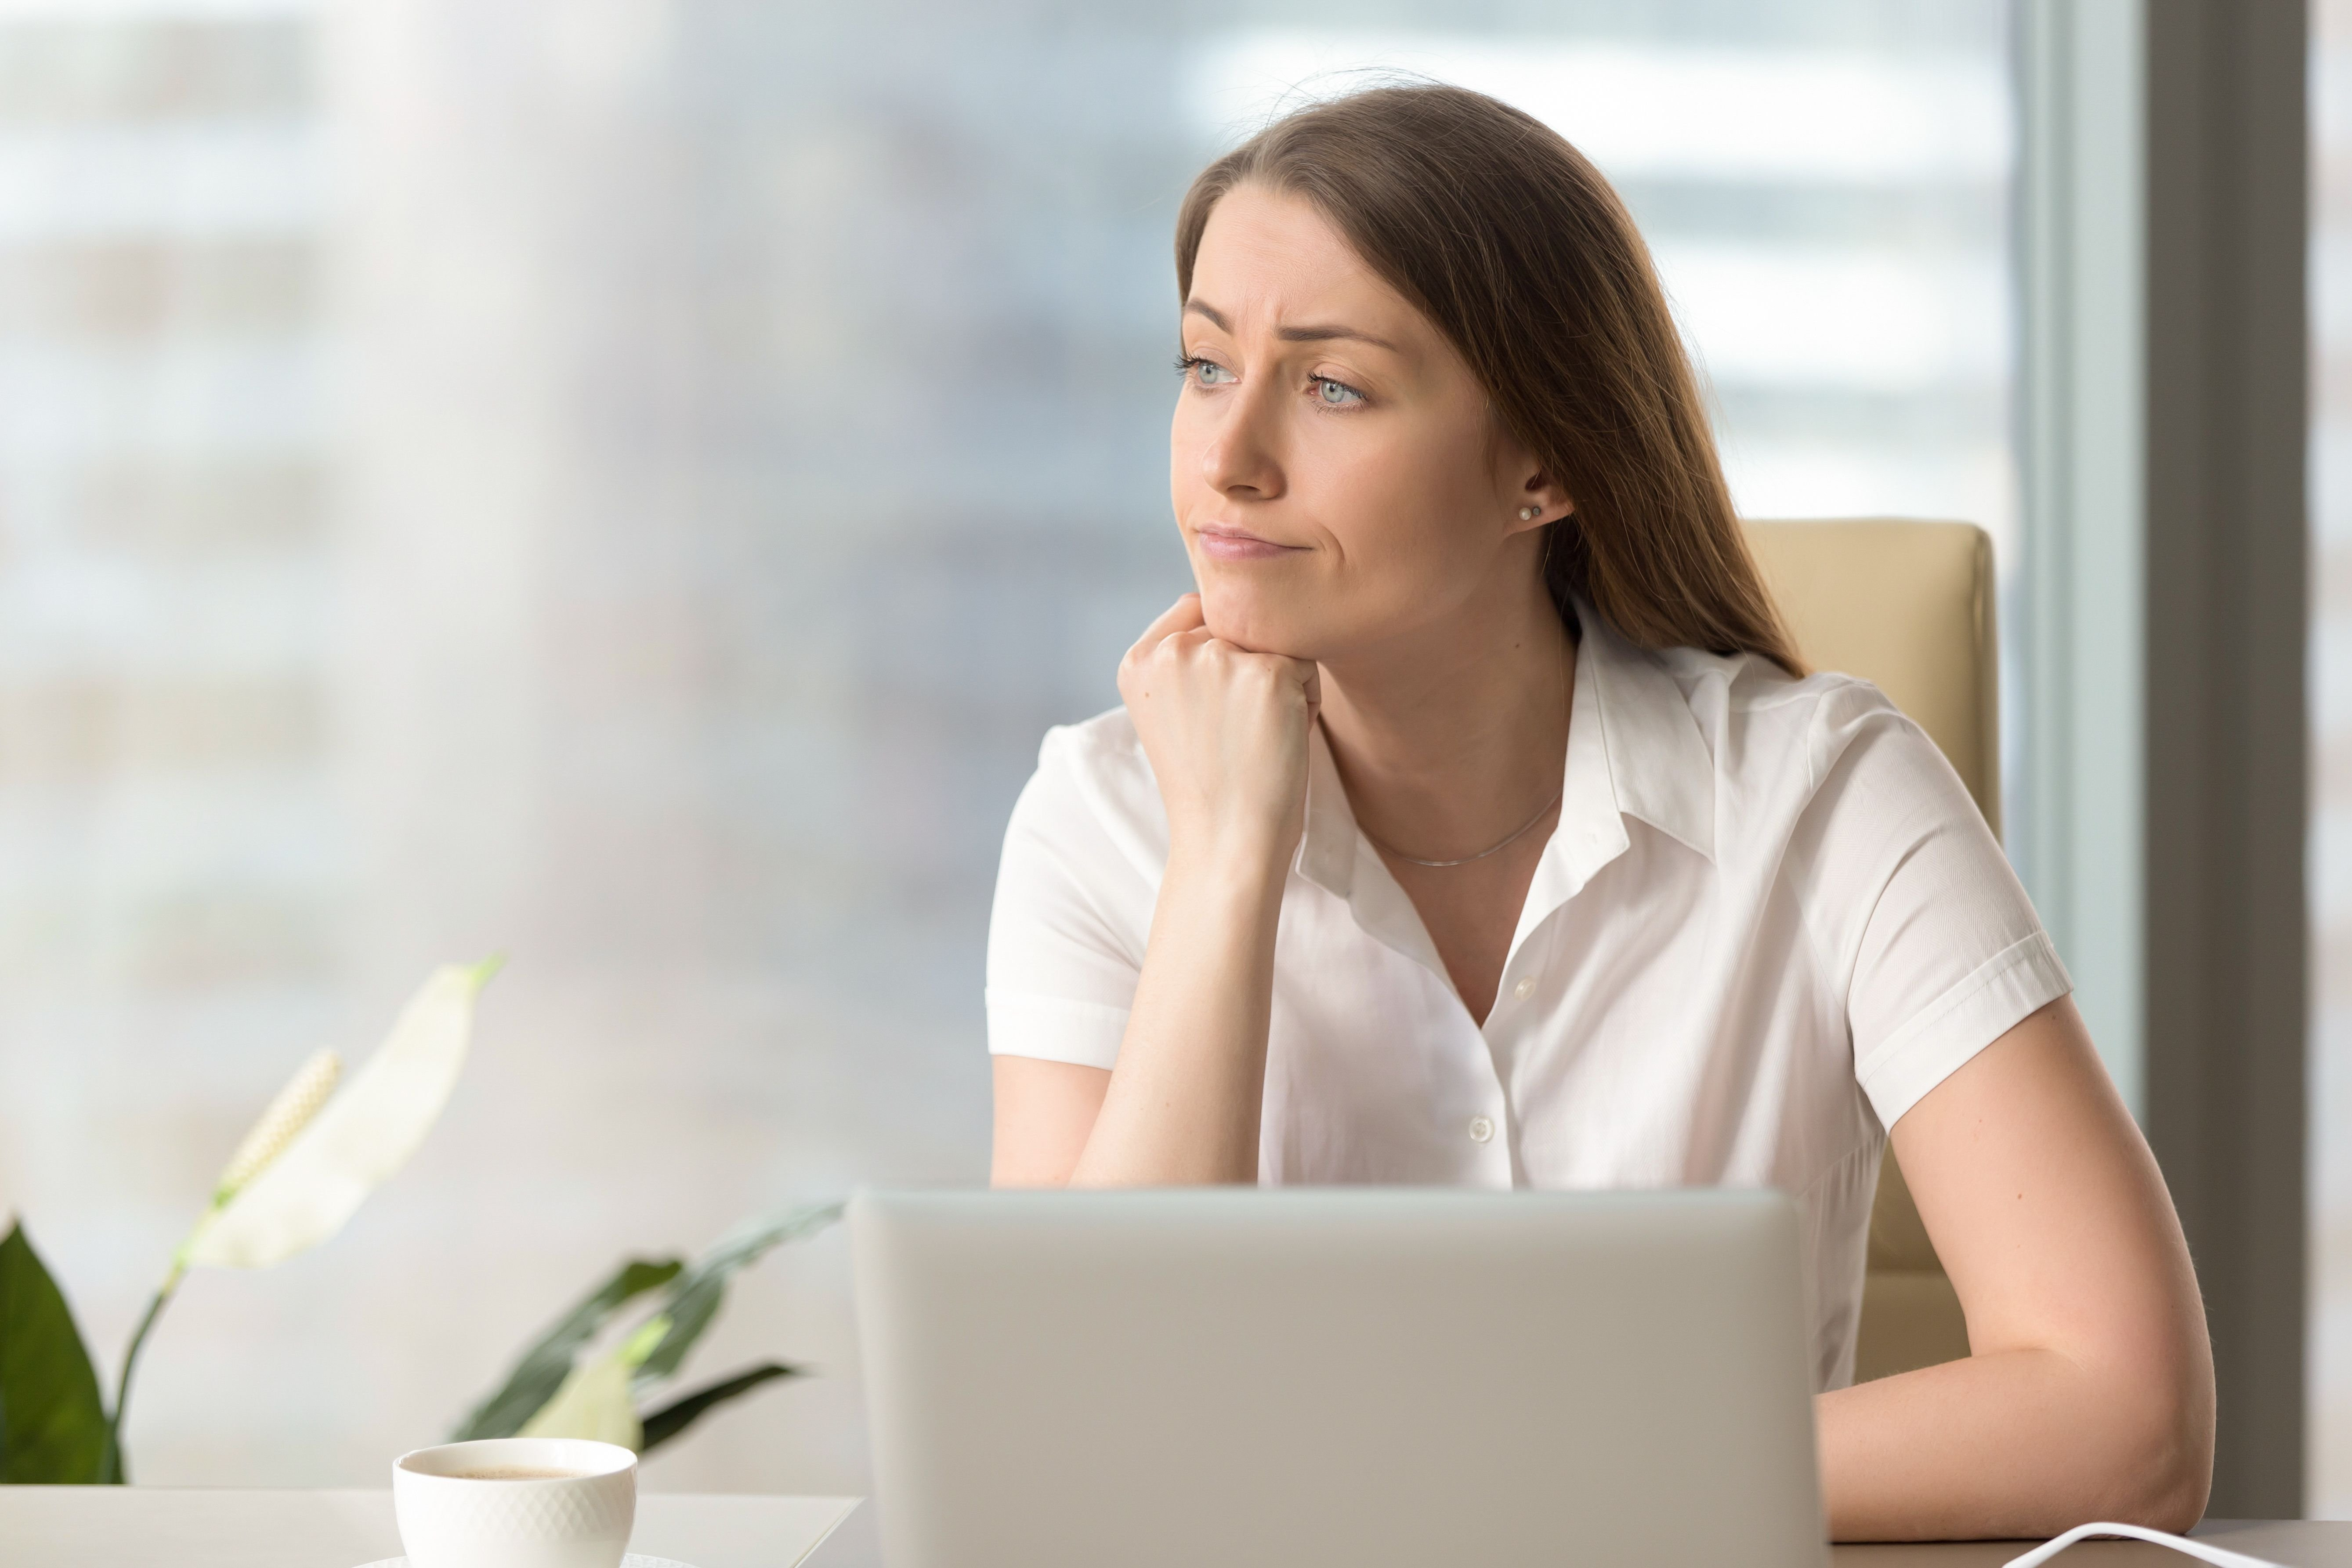 A woman looking out the window while working on her laptop. | Source: Shutterstock